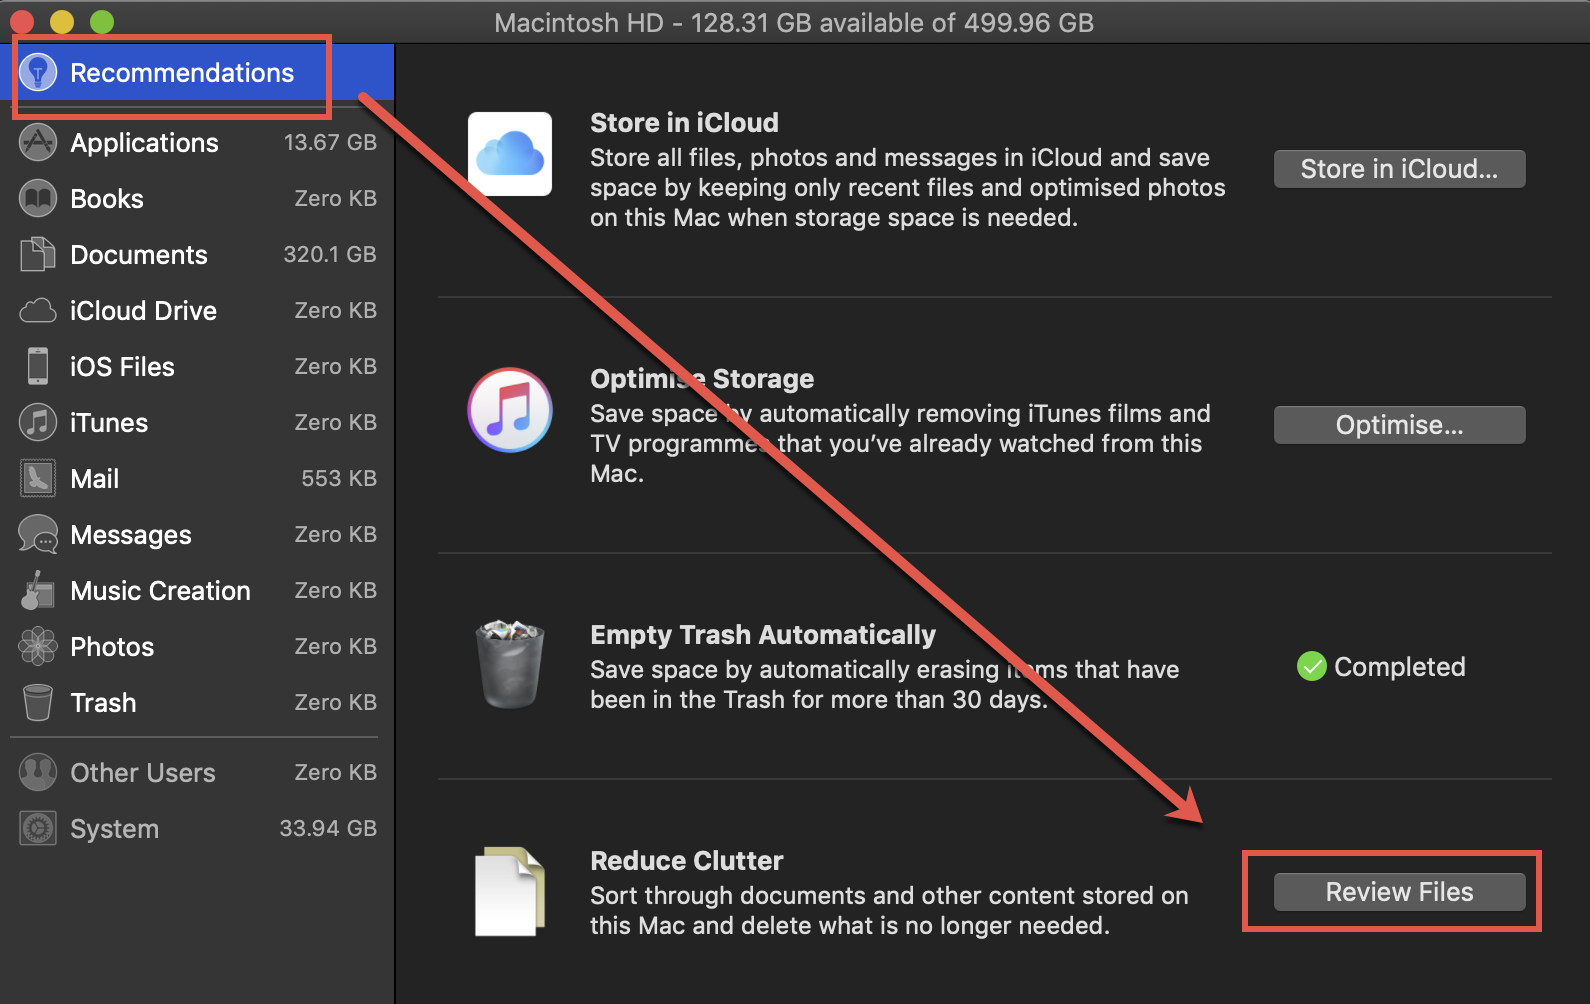 Click on the Review Files button for Reduce Clutter Recommendation in macOS Storage Management.